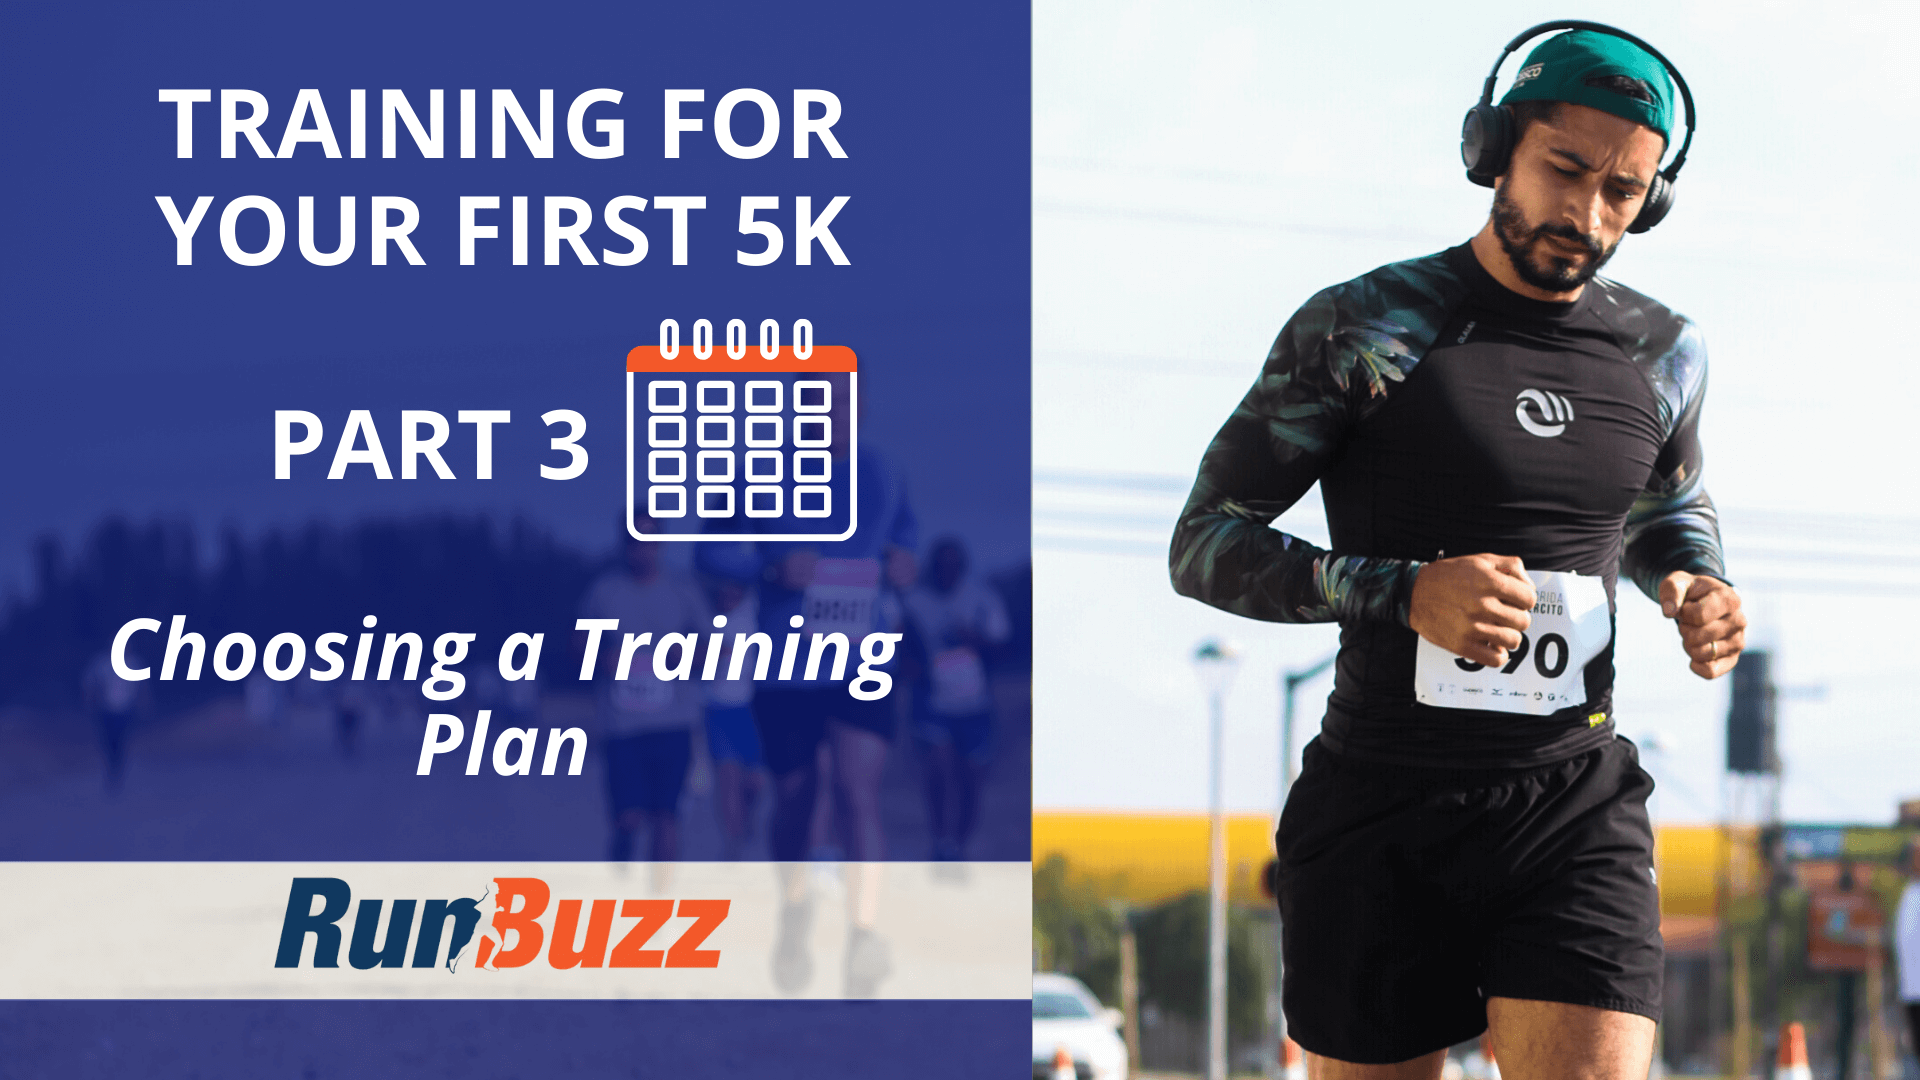 Training-For-Your-First-5K-Part-3-_-Choosing-a-Training-Plan